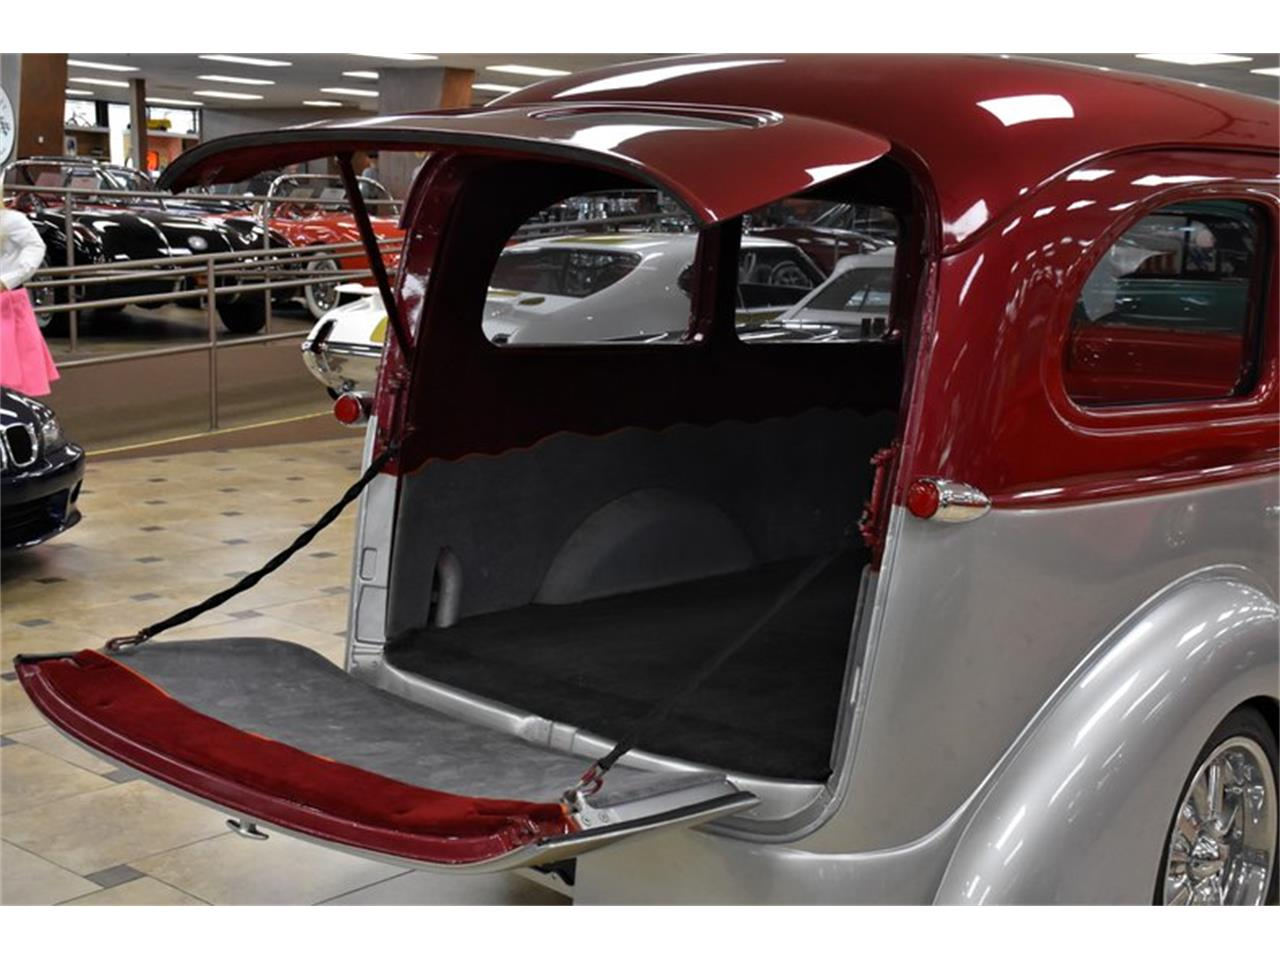 Large Picture of 1946 Chevrolet Suburban located in Venice Florida Auction Vehicle - Q6O2